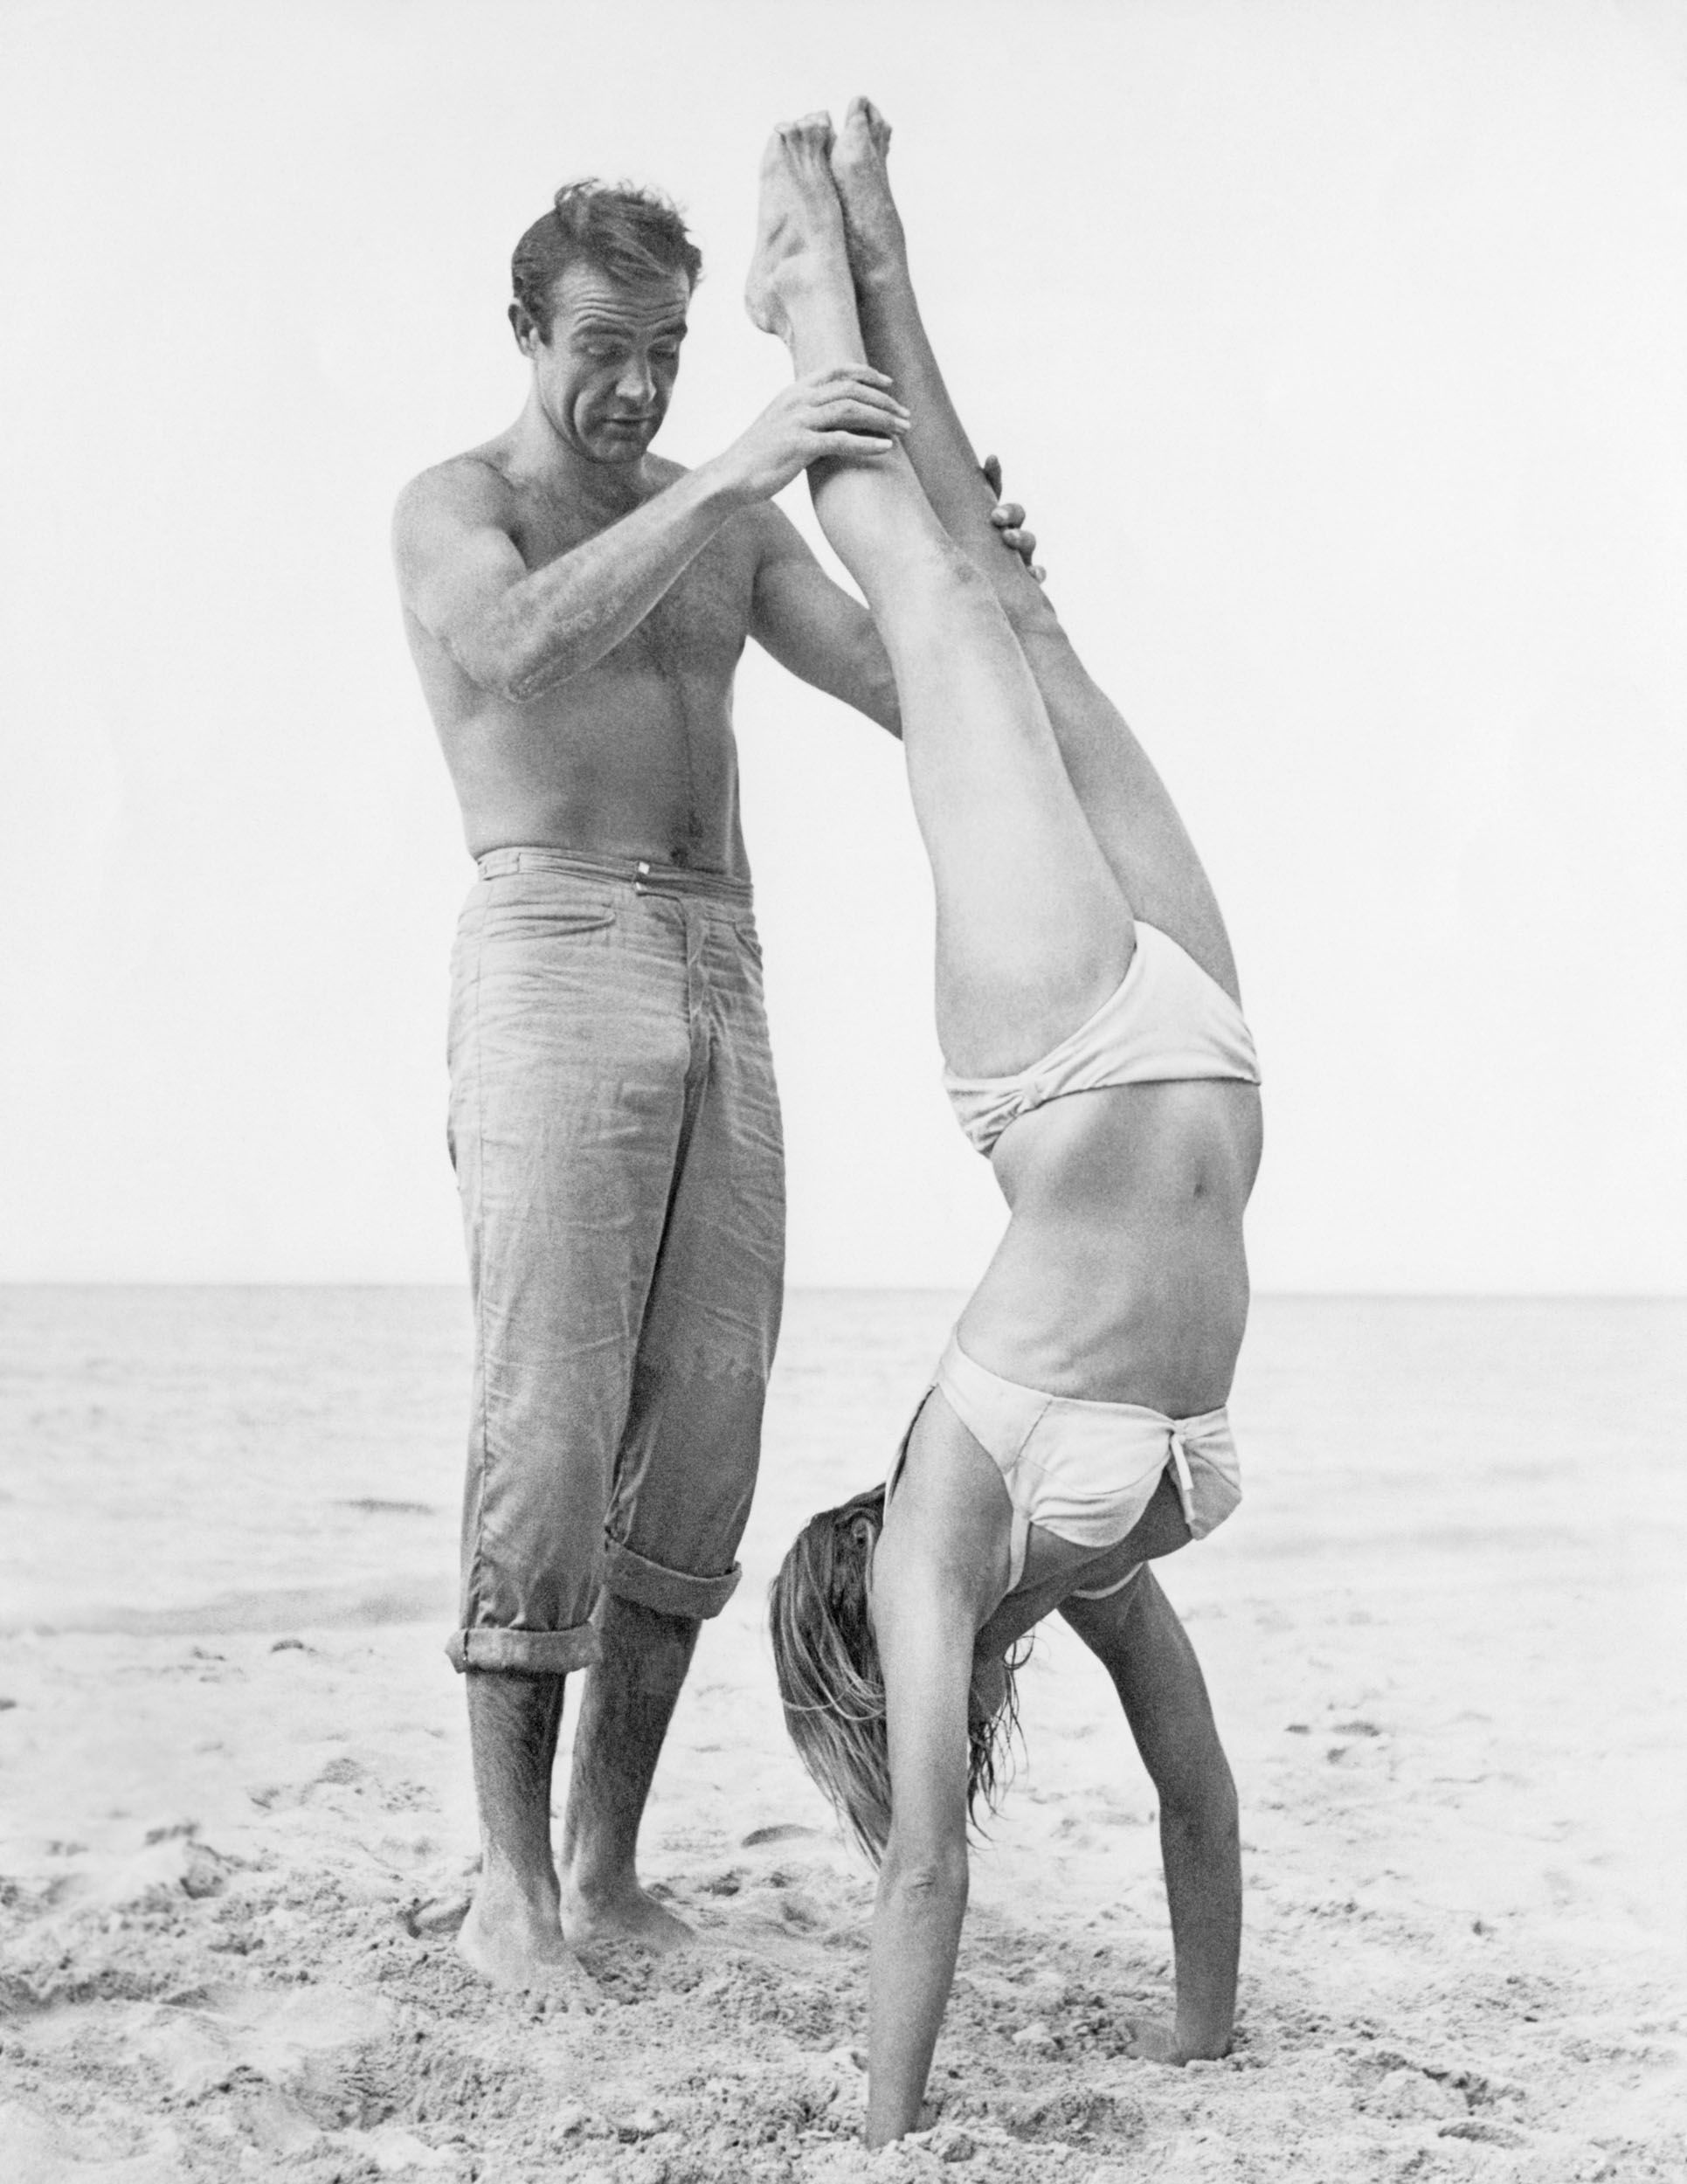 Sean Connery holds Ursula Andress while she does a handstand on a beach in a white bikini on the set of the film Dr. No .